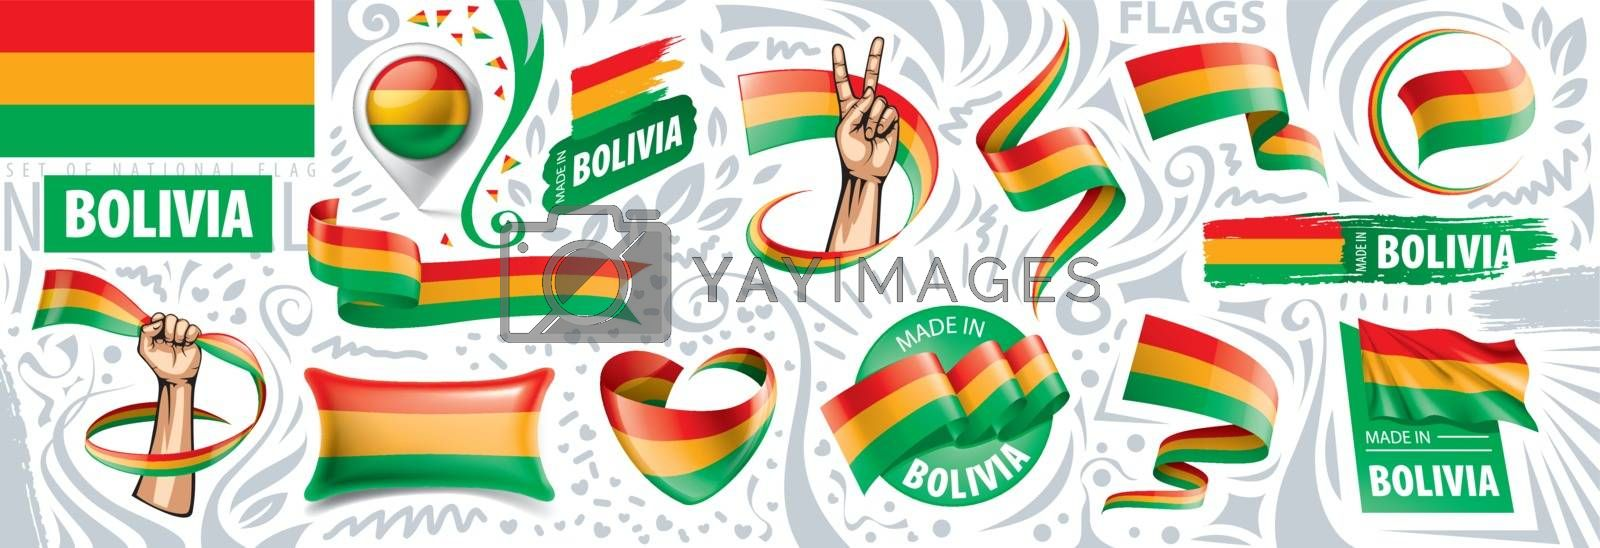 Vector set of the national flag of Bolivia in various creative designs by Butenkov